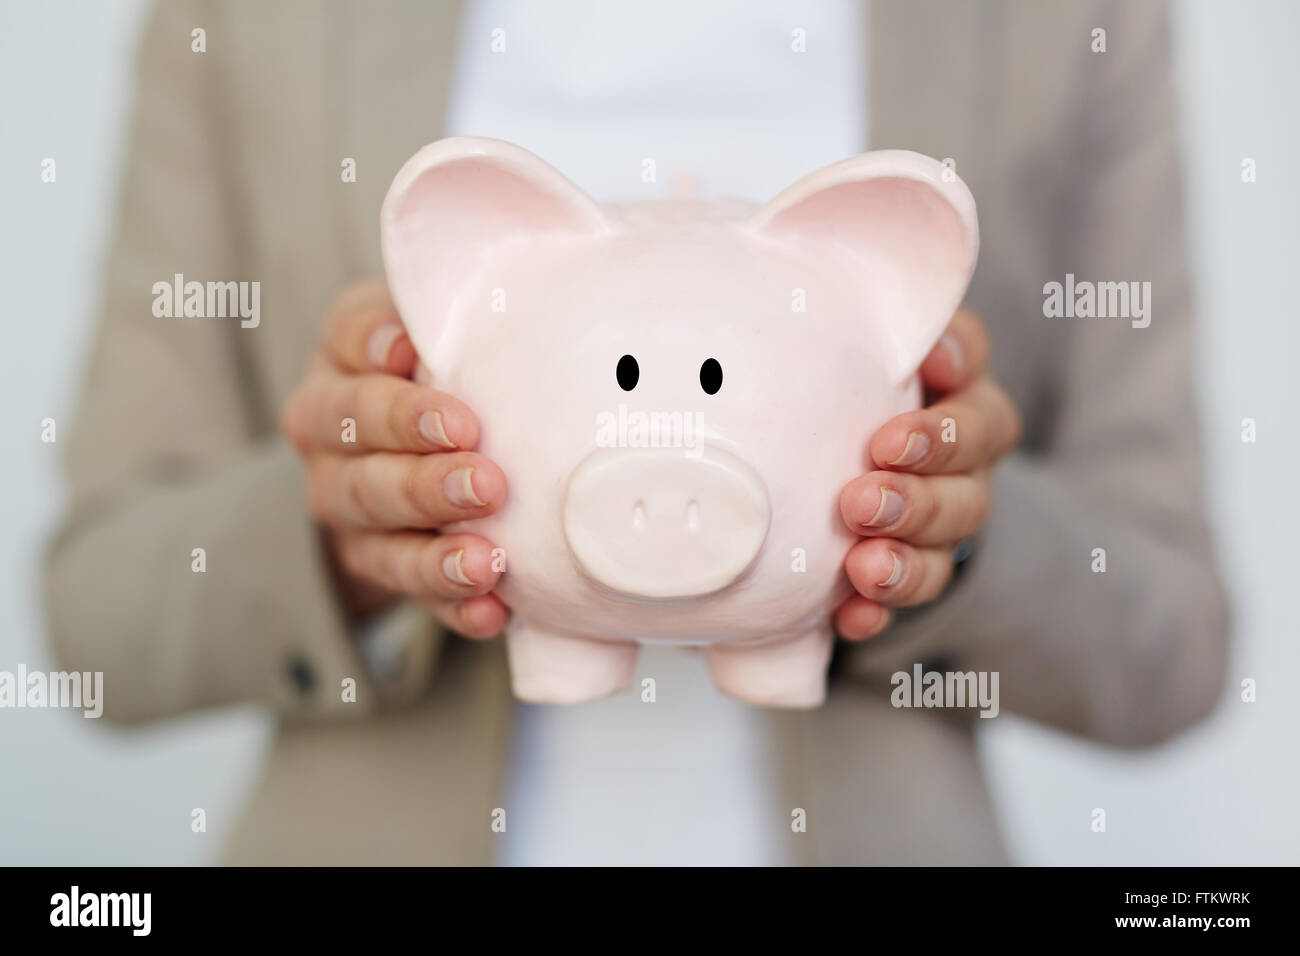 Business reserves - Stock Image